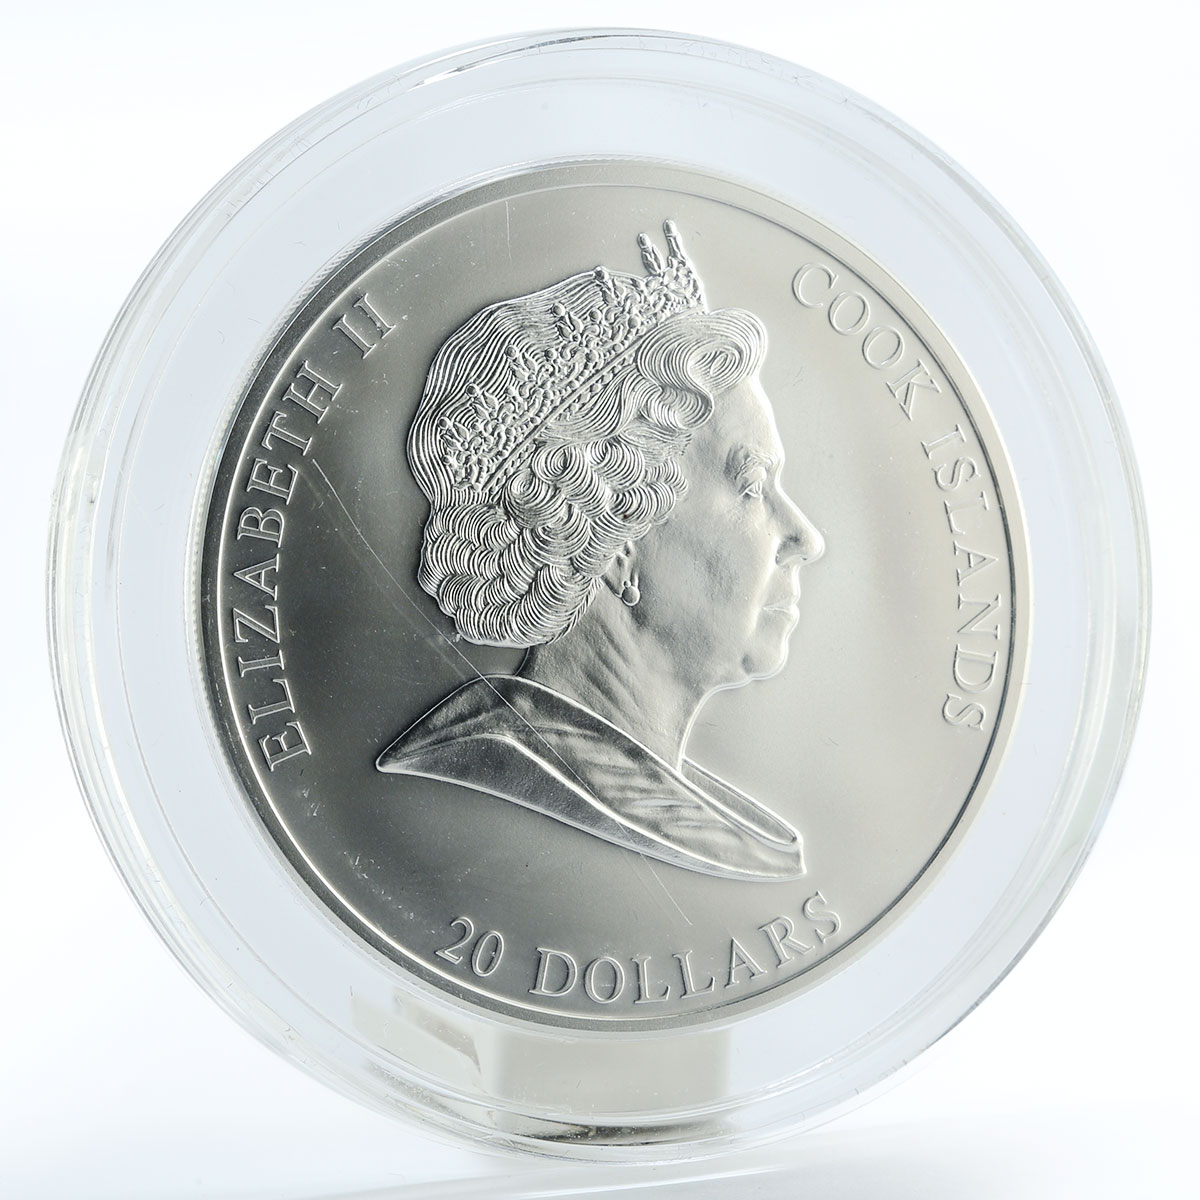 Cook Islands 20 dollars Art Michelangelo Buonarroti crystals silver coin 2008